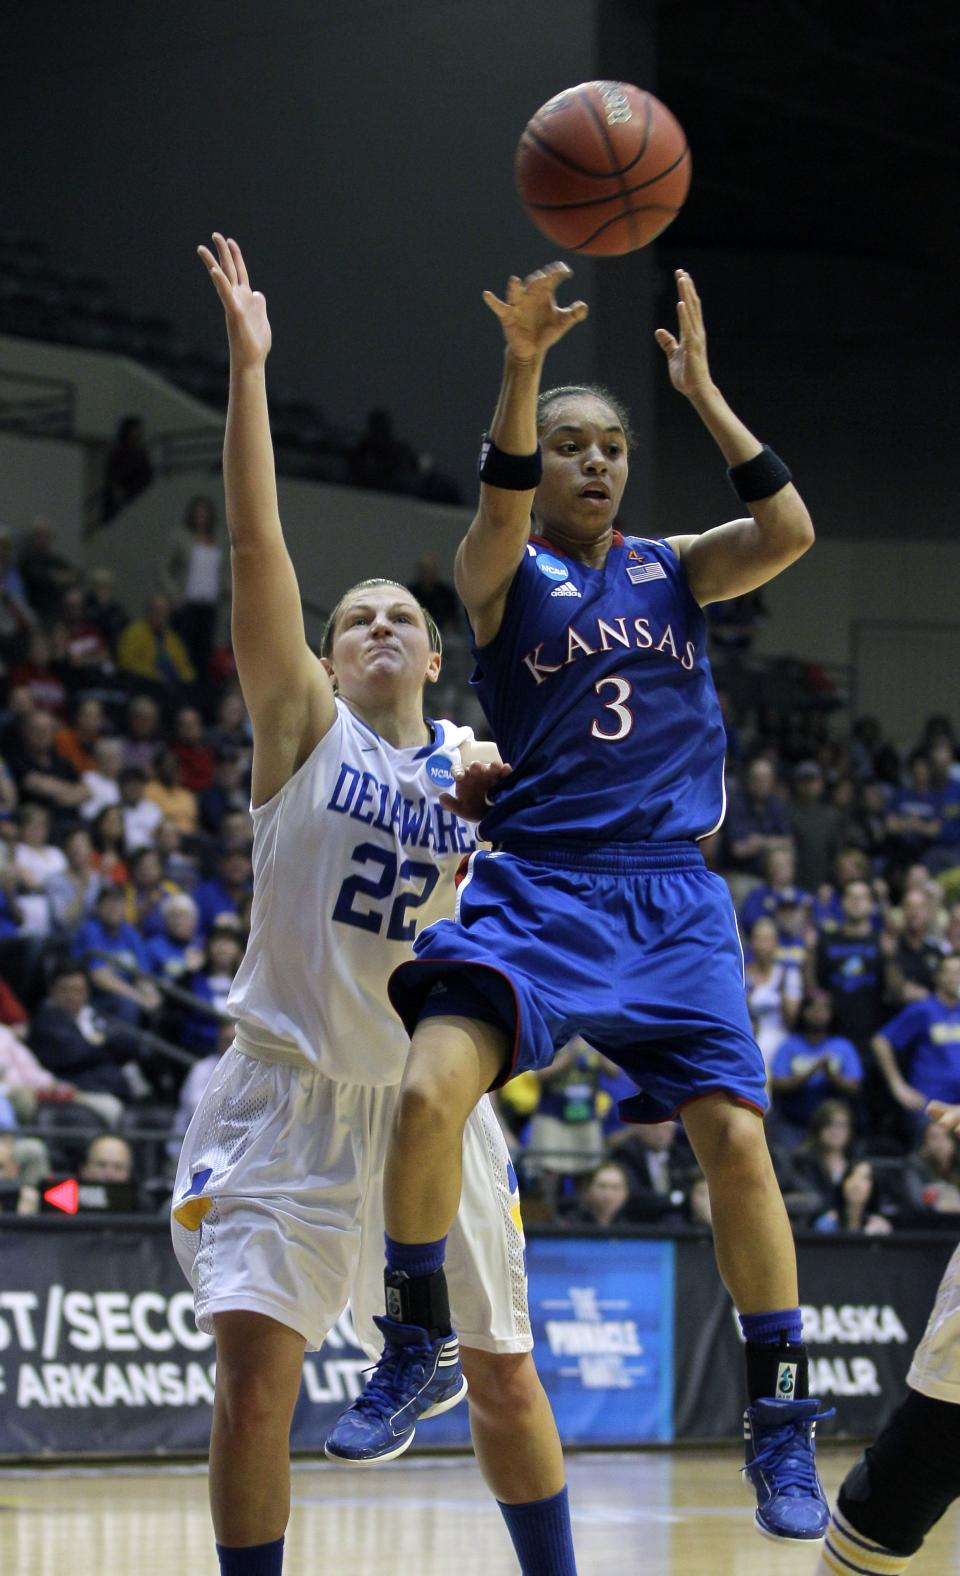 Kansas' Angel Goodrich (3) passes over Delaware's Lauren Carra (22) during the second half of an NCAA tournament second-round women's college basketball game in Little Rock, Ark., Tuesday, March 20, 2012. Kansas won 70-64. (AP Photo/Danny Johnston)